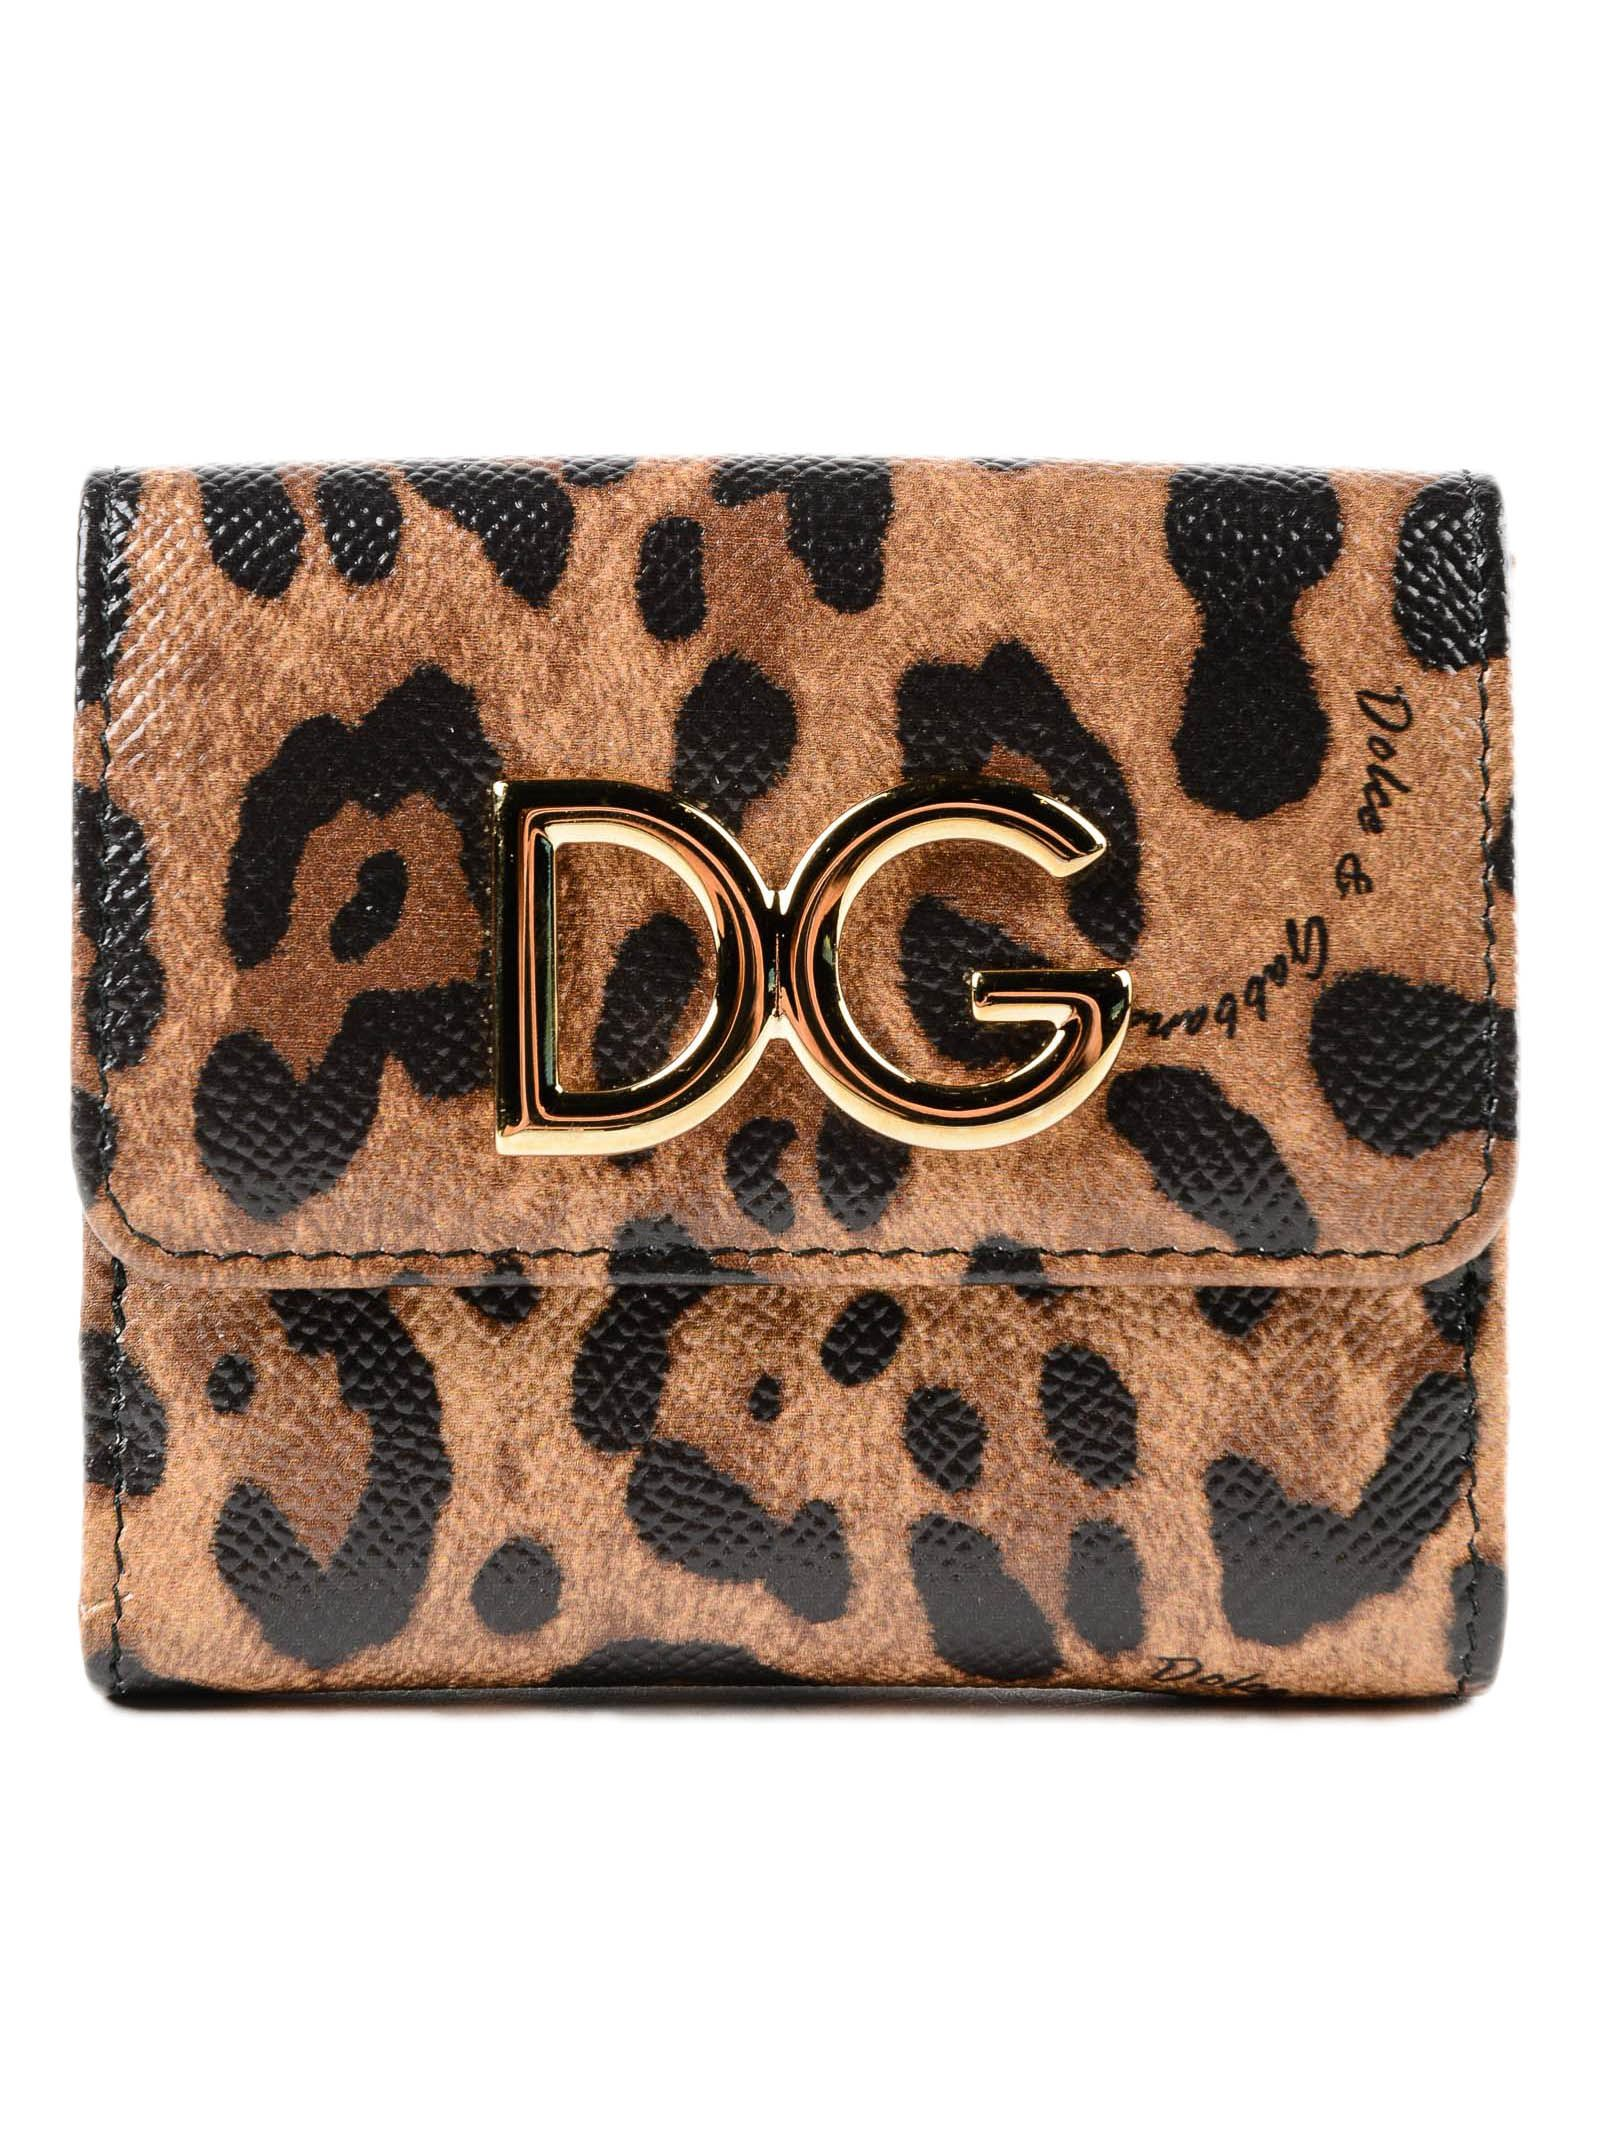 DOLCE & GABBANA DAUPHINE ST. LEO FRENCH FLAP WALLET